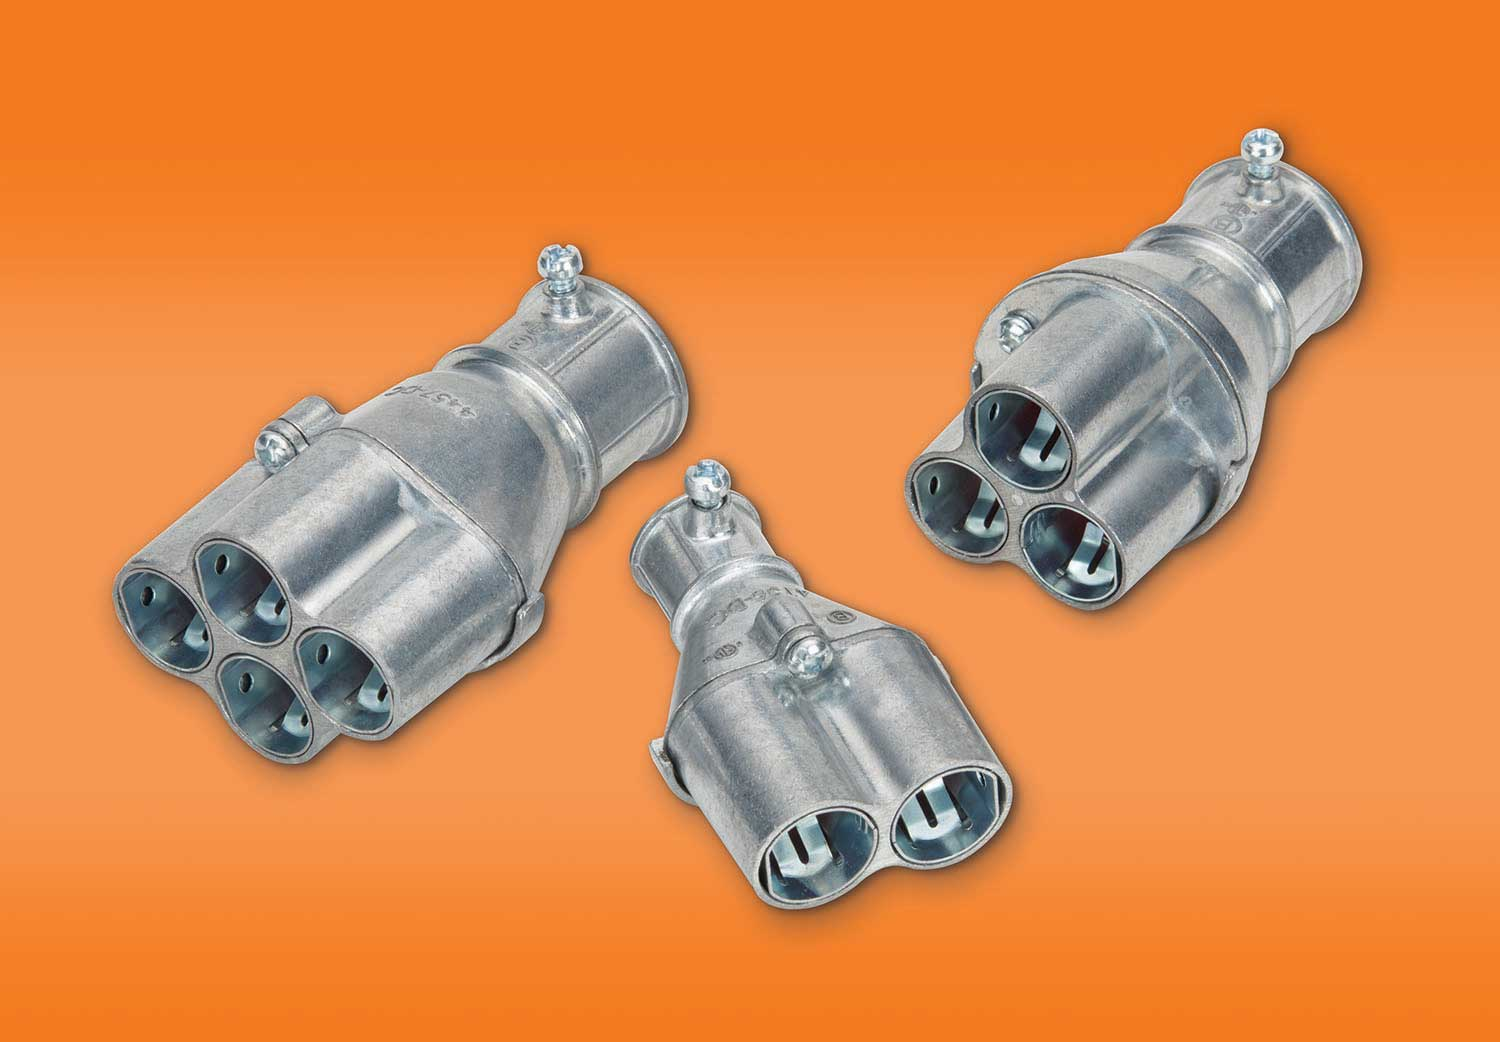 Bridgeport's family of Mighty-Merge multi-port transition fittings